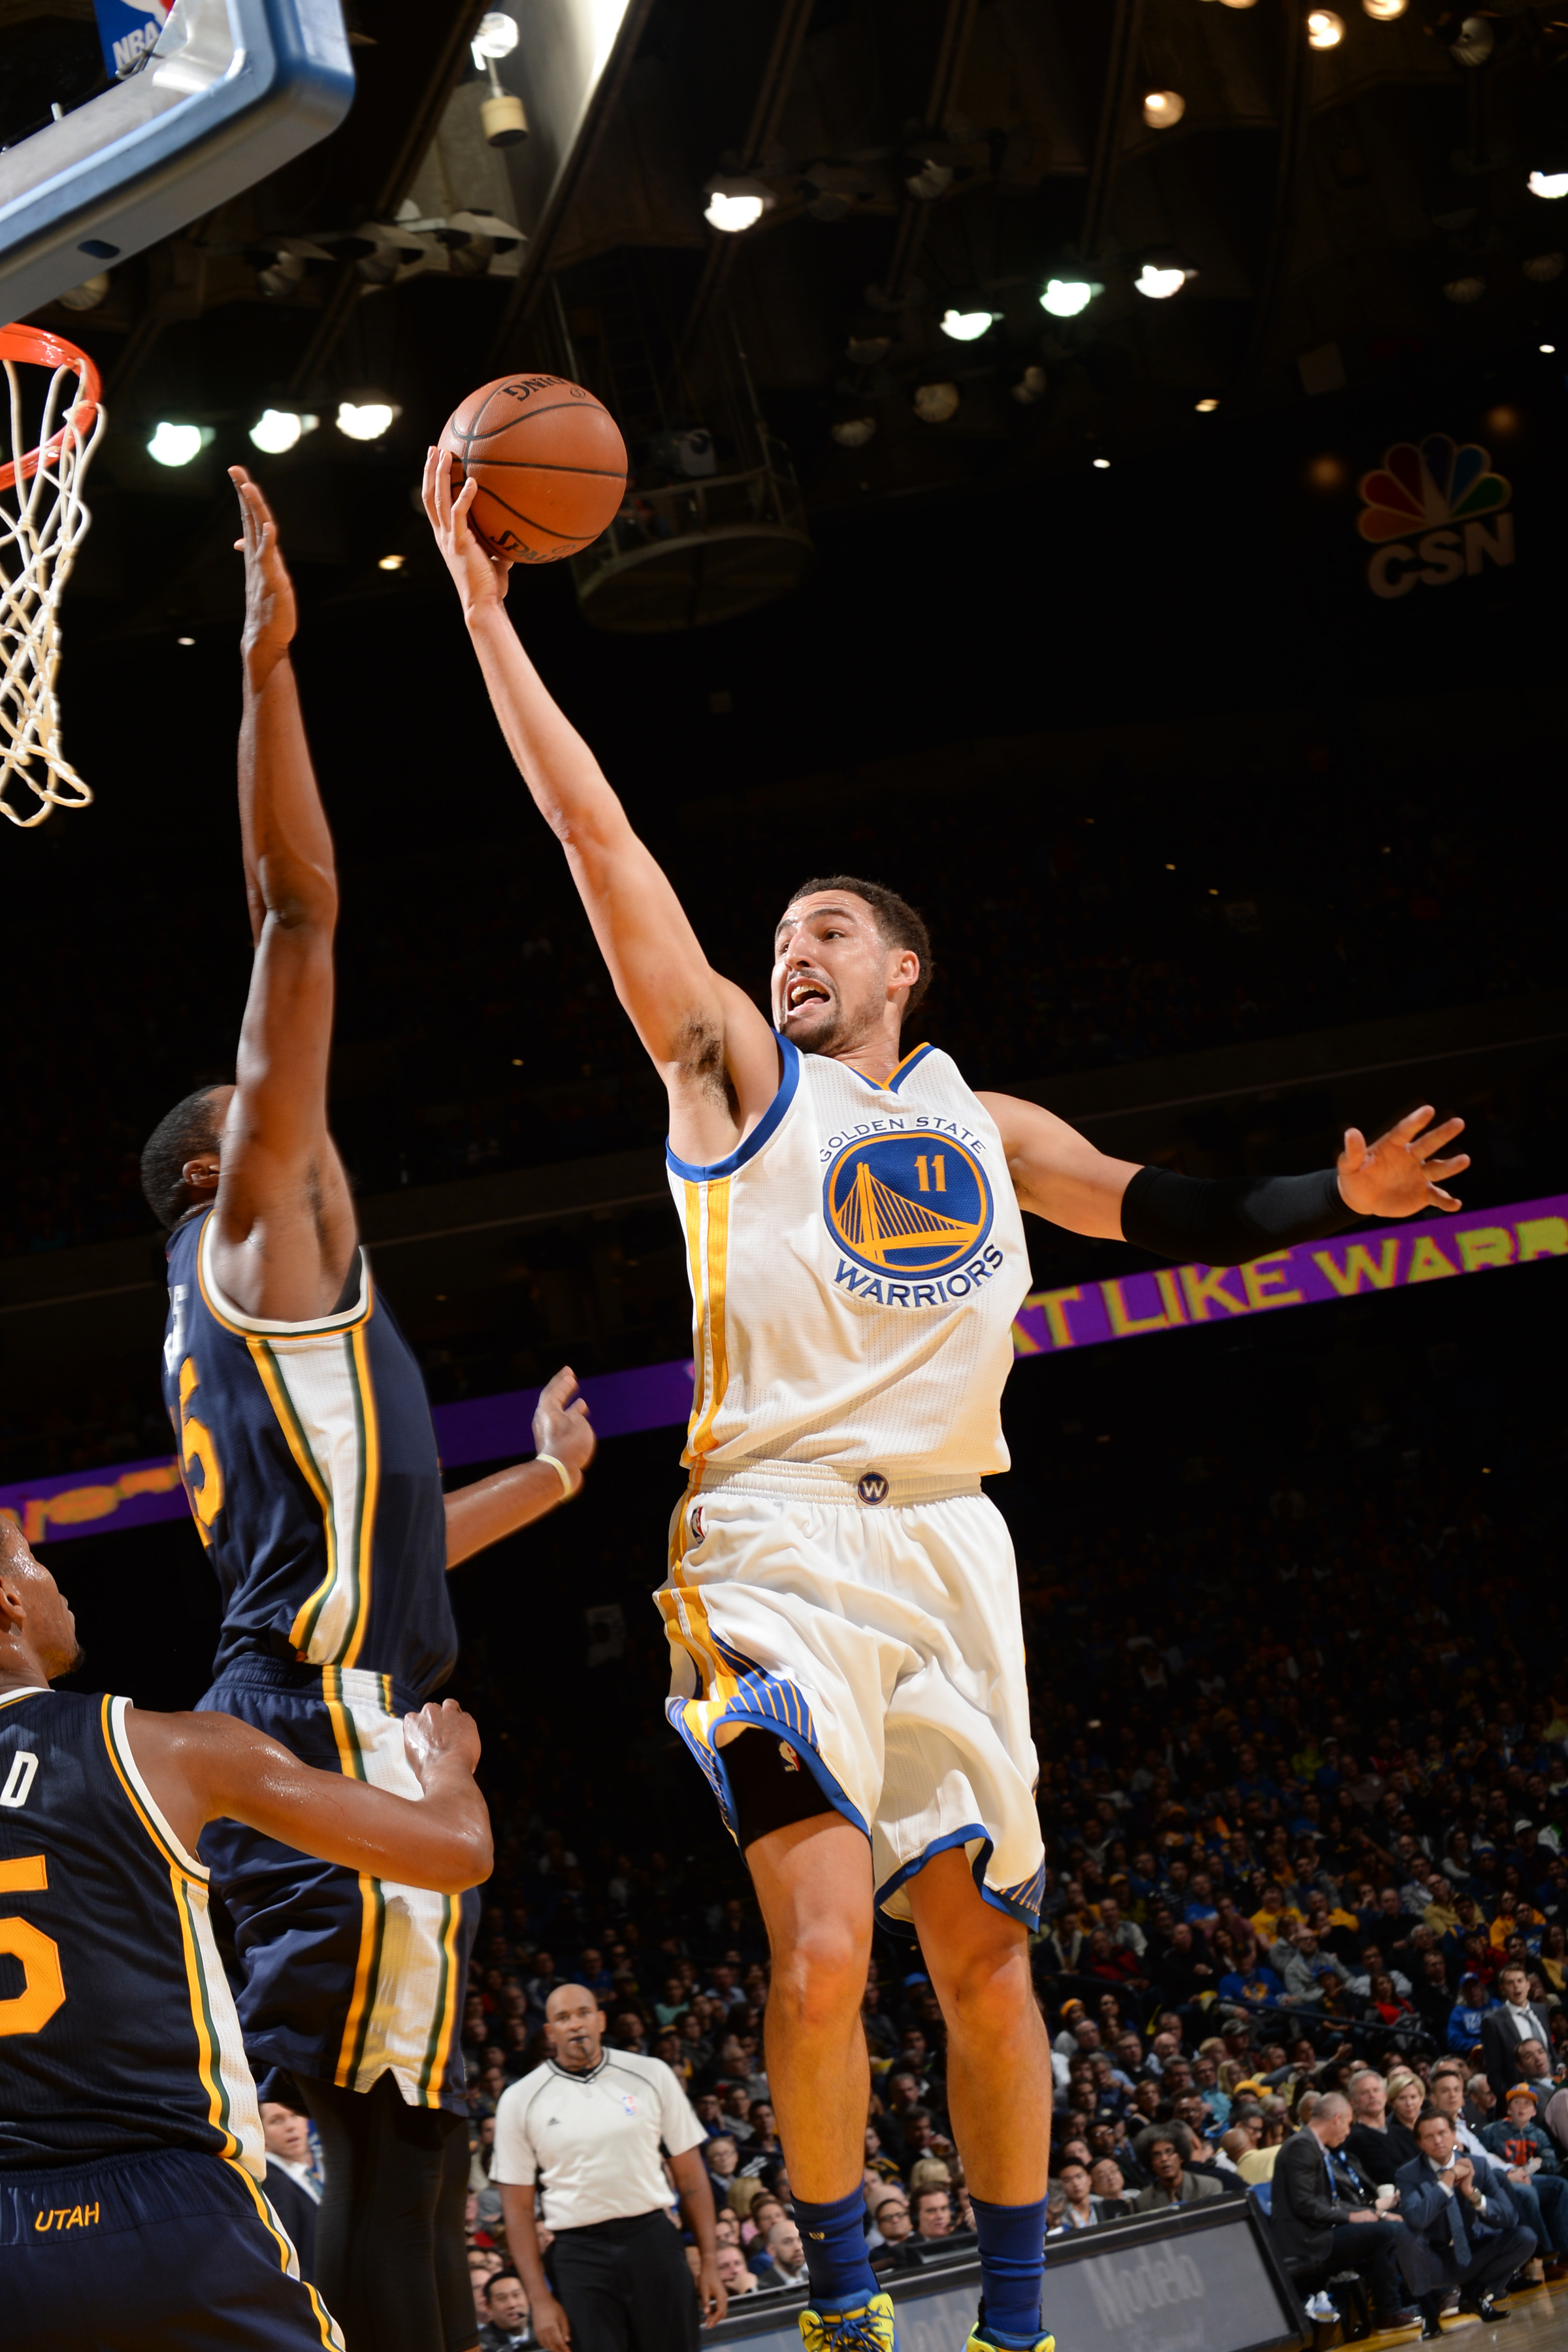 OAKLAND, CA - DECEMBER 23: Klay Thompson #11 of the Golden State Warriors shoots the ball against the Utah Jazz  on December 13, 2015 at ORACLE Arena in Oakland, California. (Photo by Noah Graham/NBAE via Getty Images)